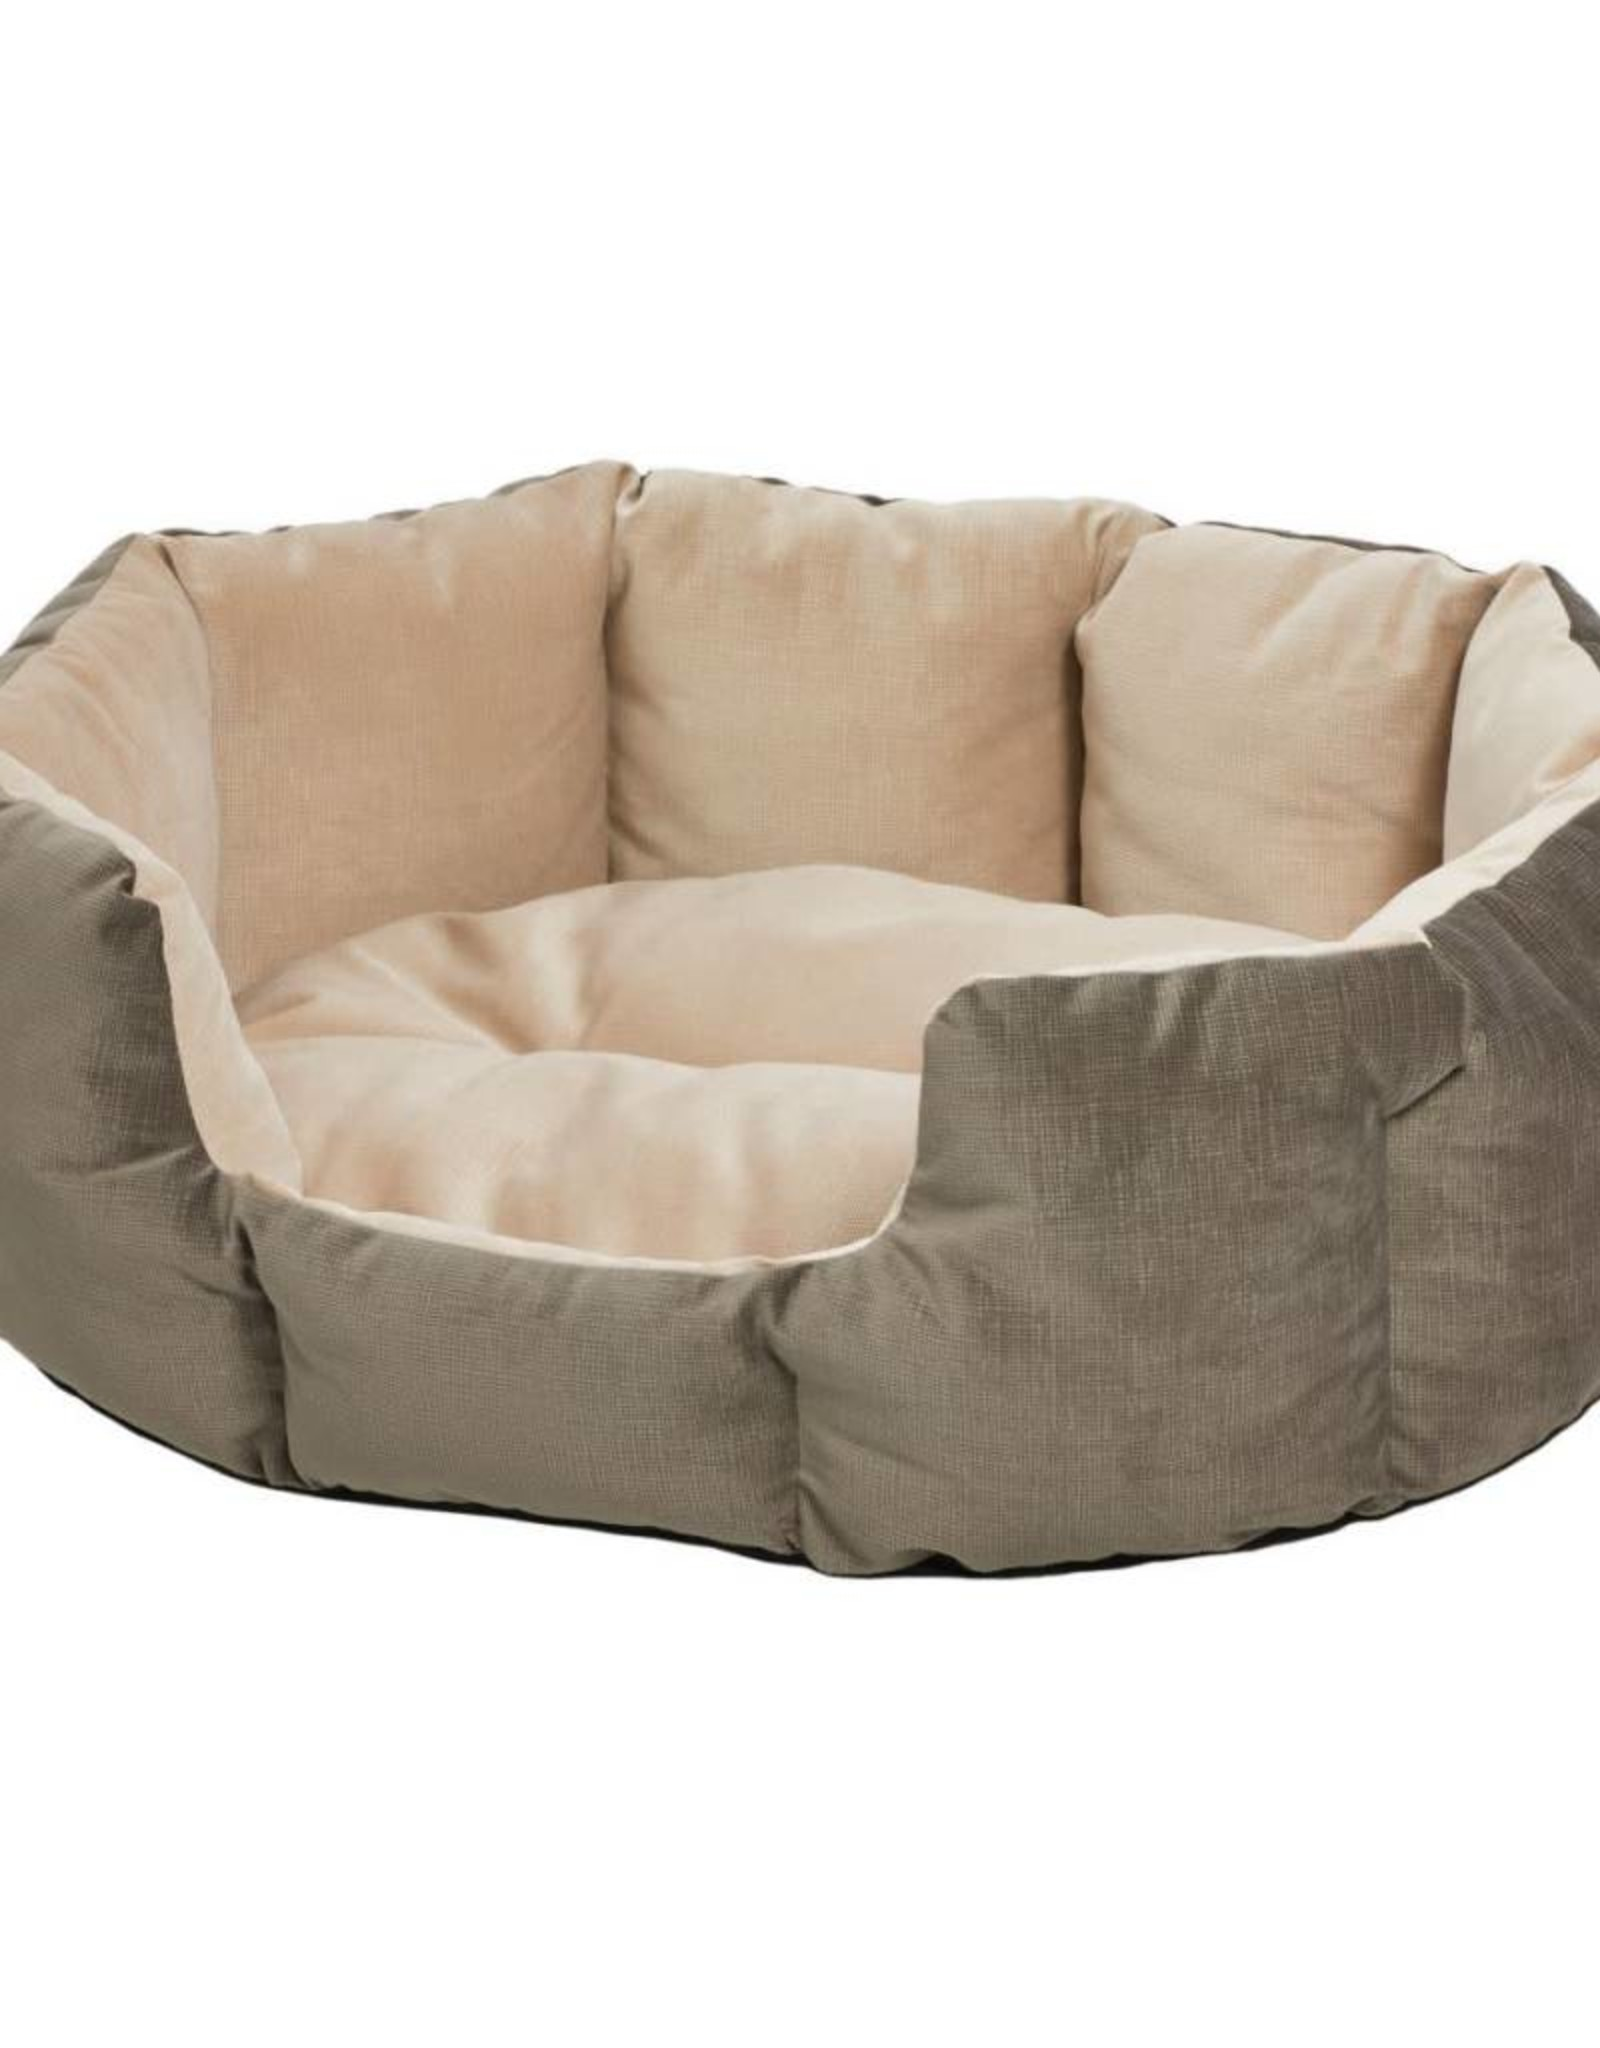 MidWest Homes for Pets Midwest Quiet Time Deluxe Gray Tulip Bed